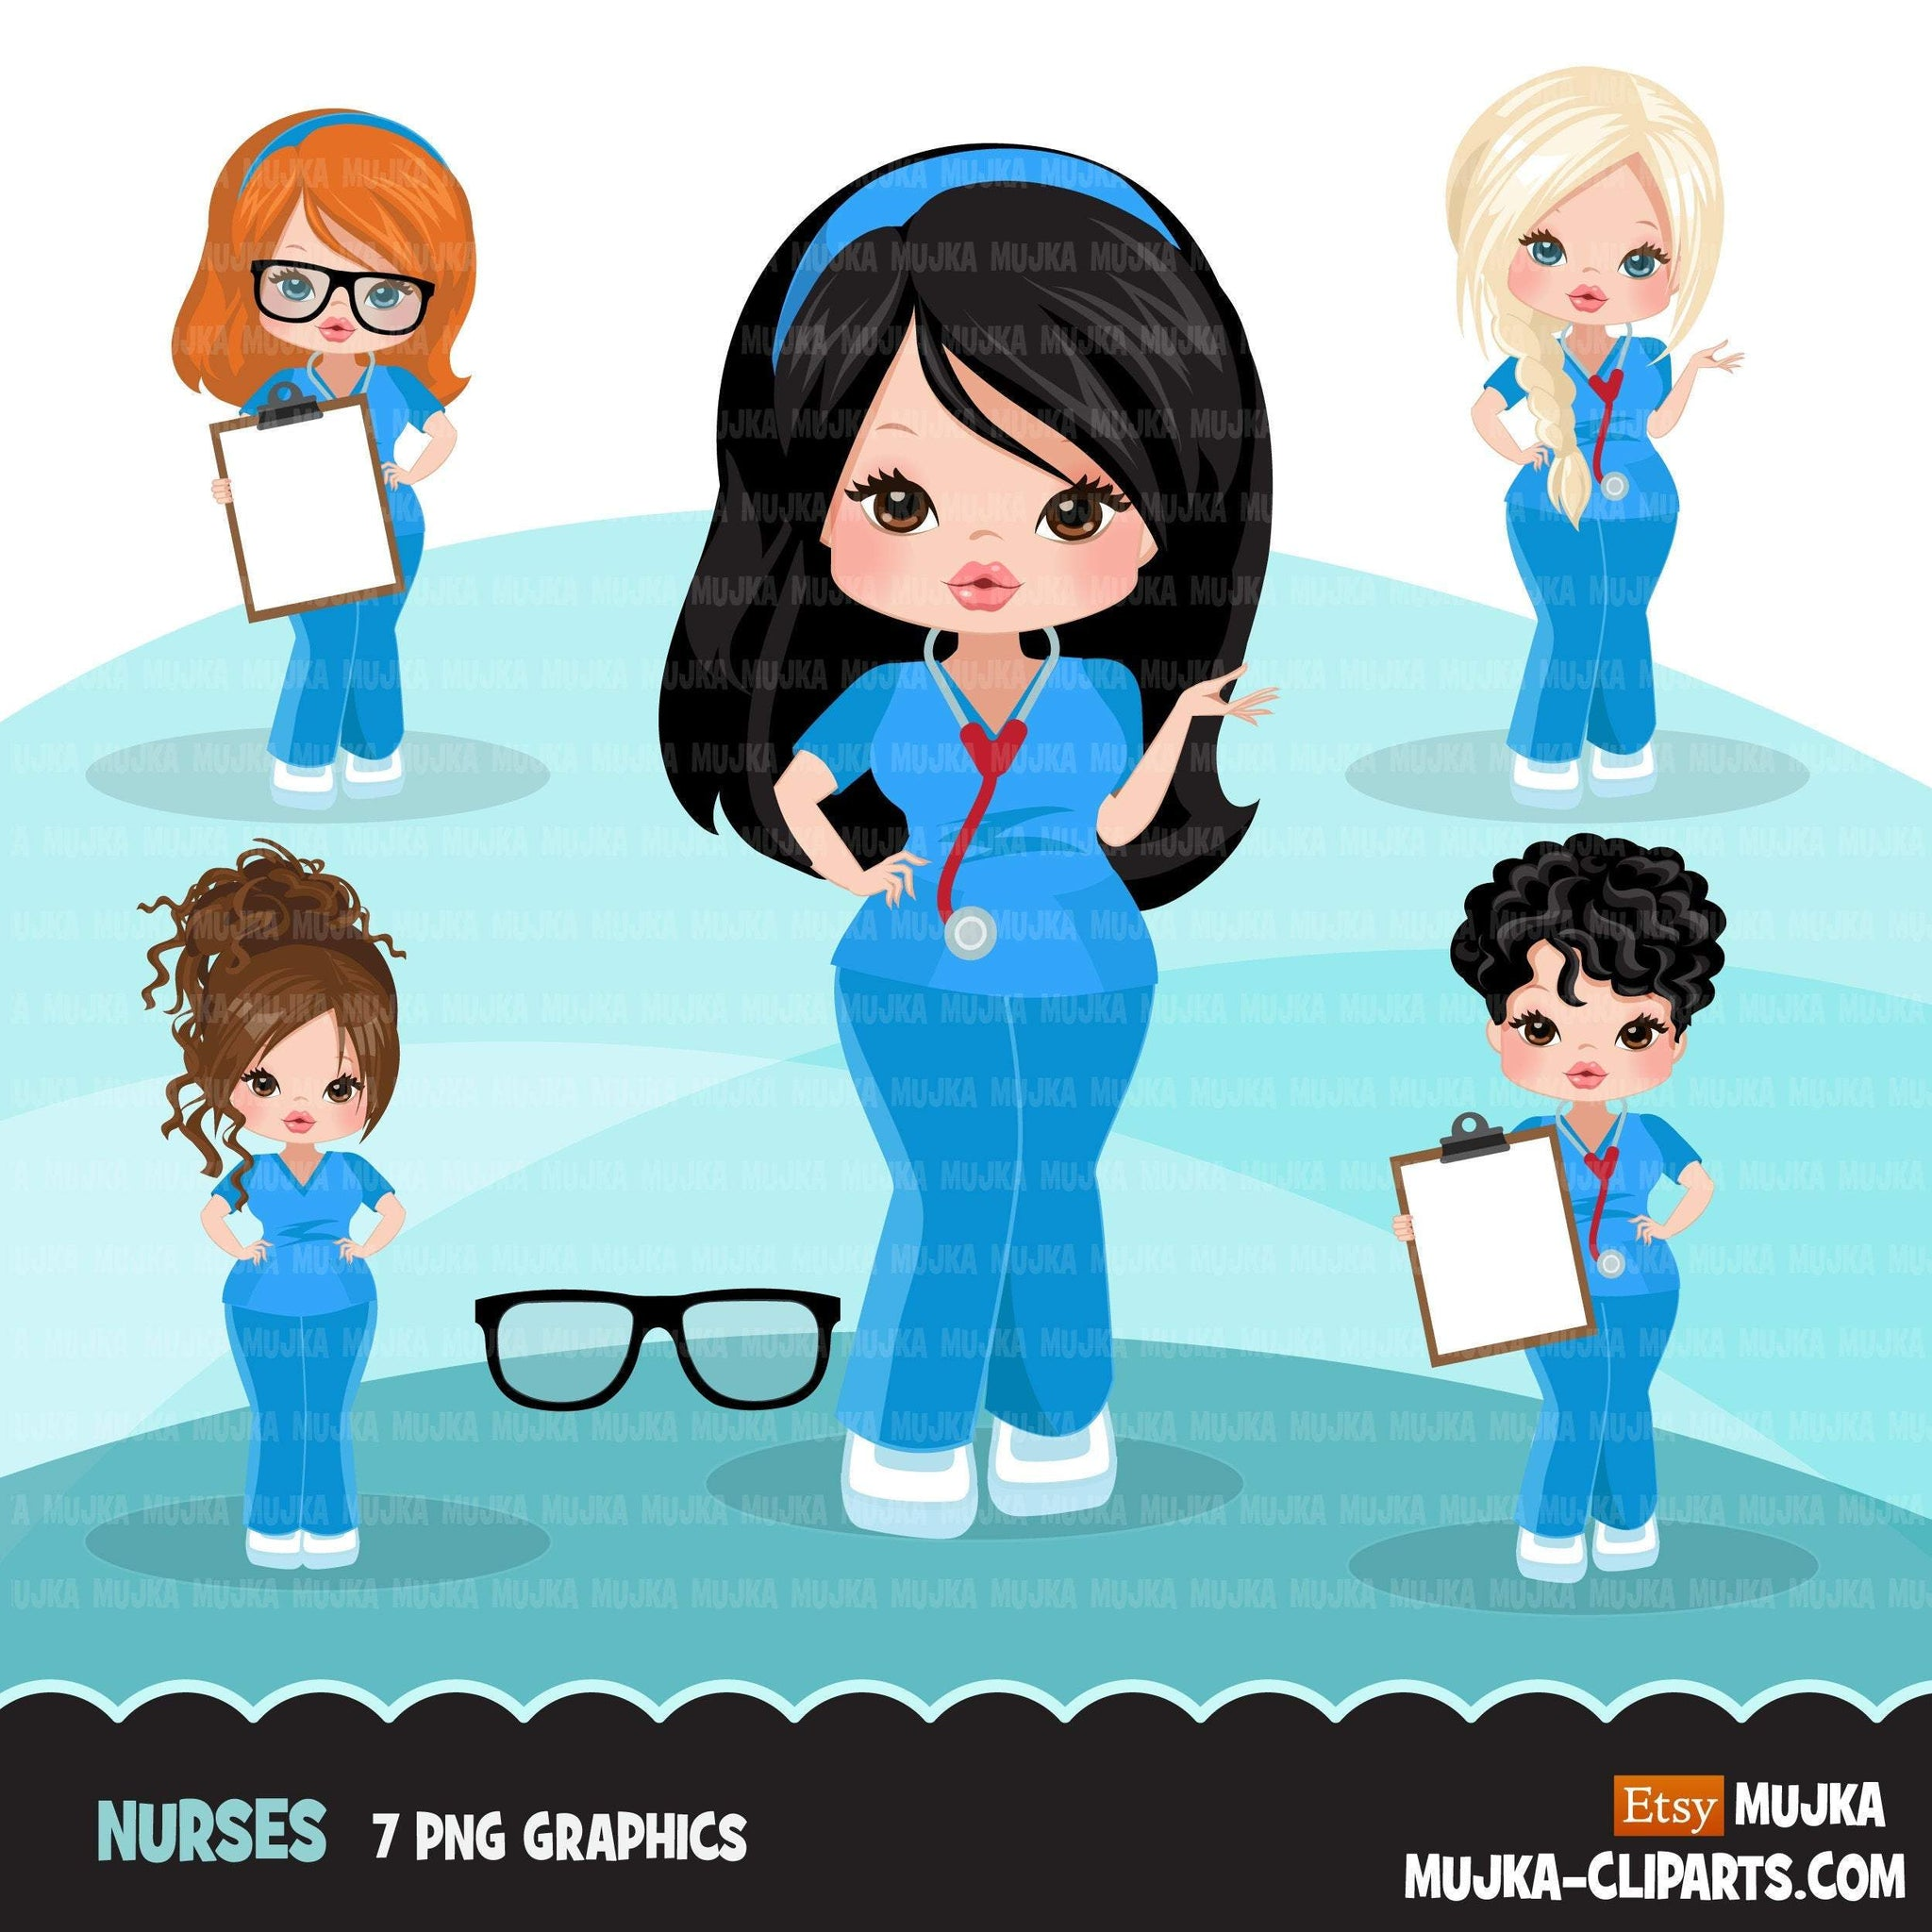 Nurse clipart with scrubs, patient chart graphics, print and cut PNG T-Shirt Designs, Medical clip art